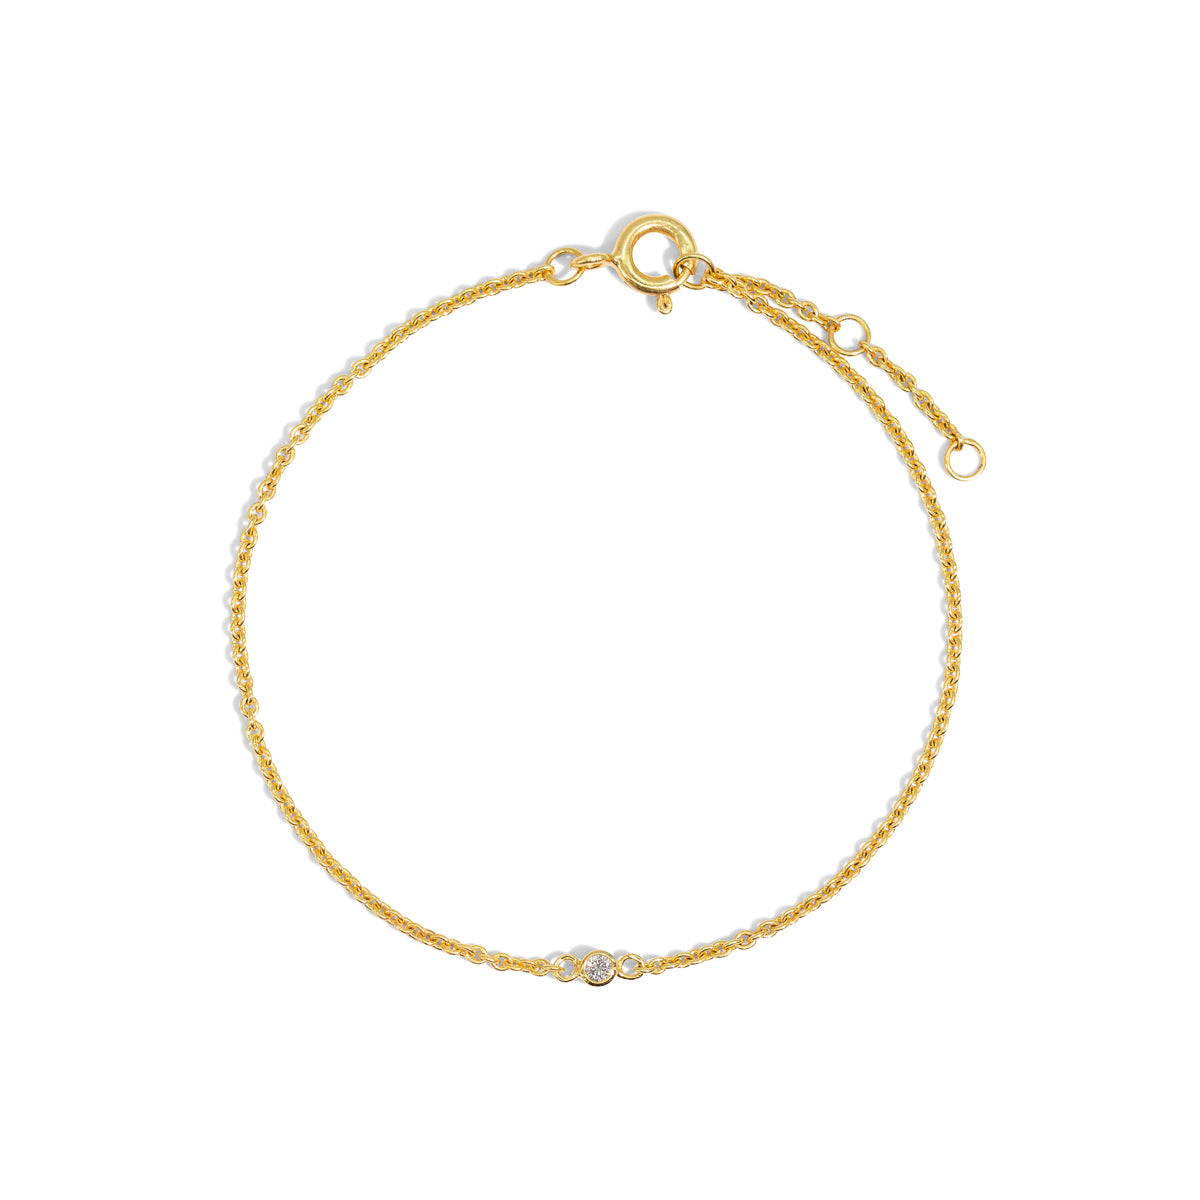 The Gold Diamond Speck Bracelet